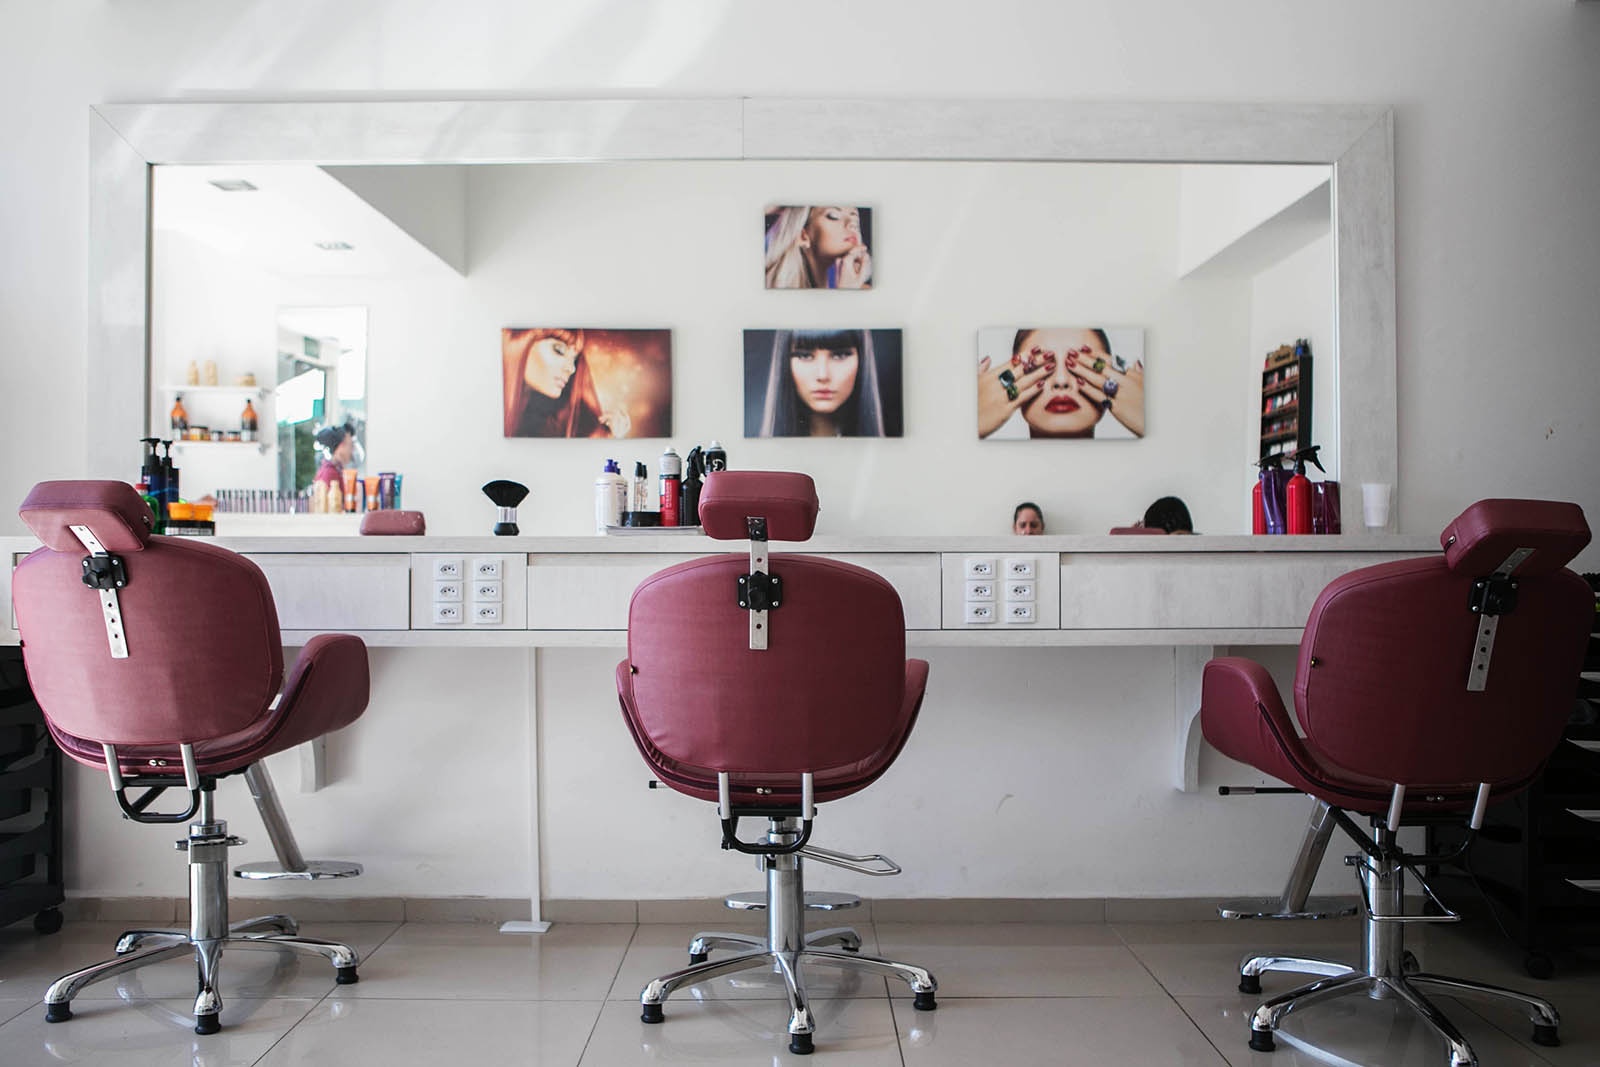 The 'Beauty' of Promoting a Salon through Digital Marketing